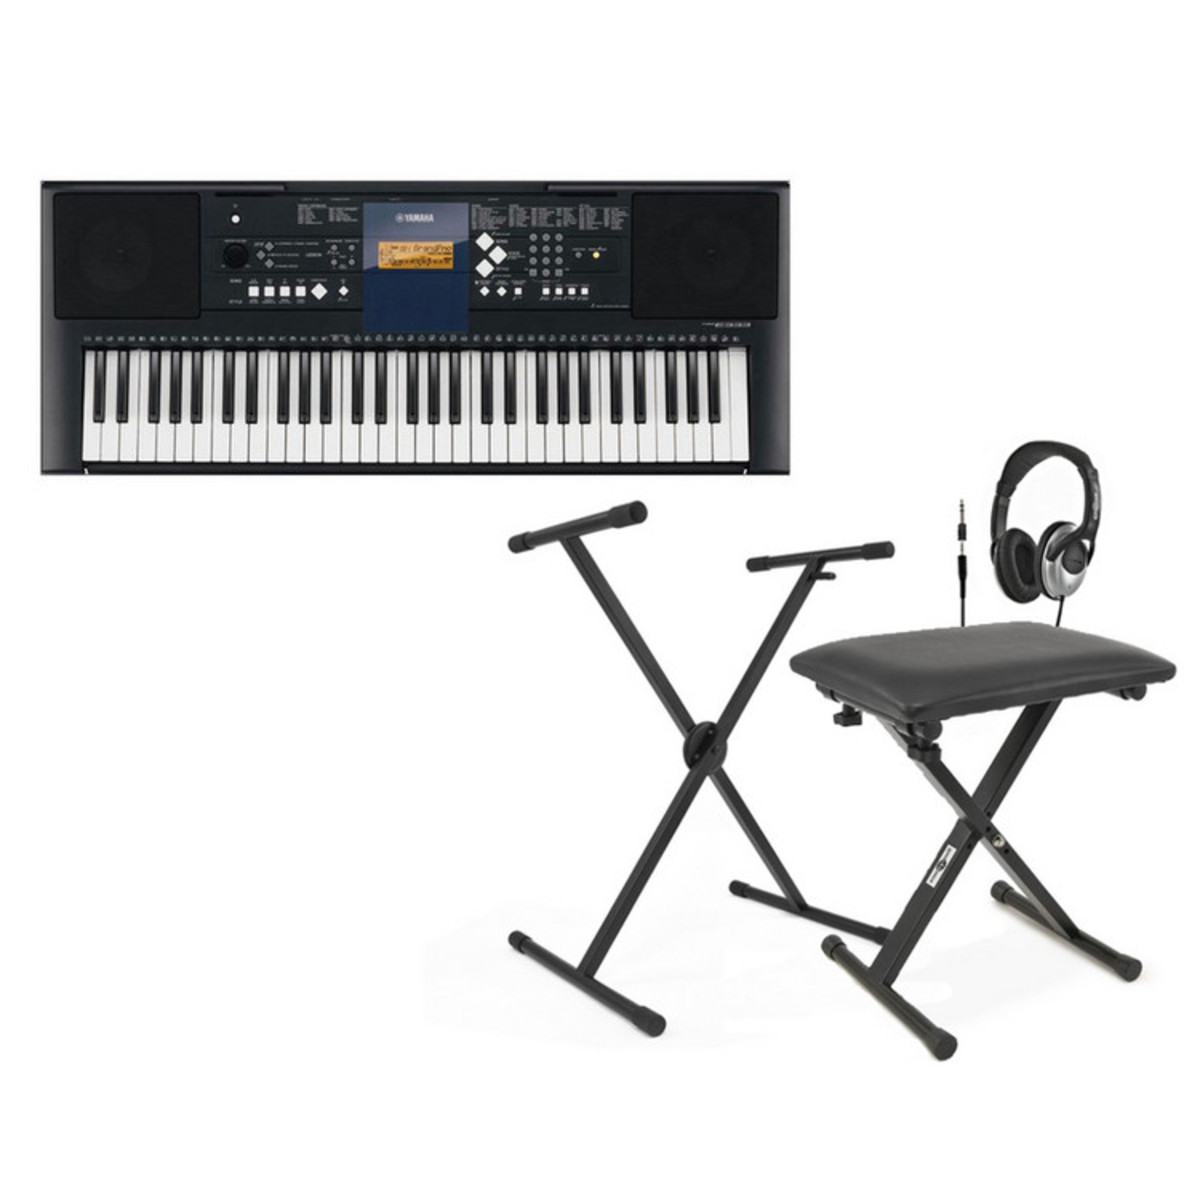 Disc Yamaha Psr E333 Portable Keyboard With Stand Bench At